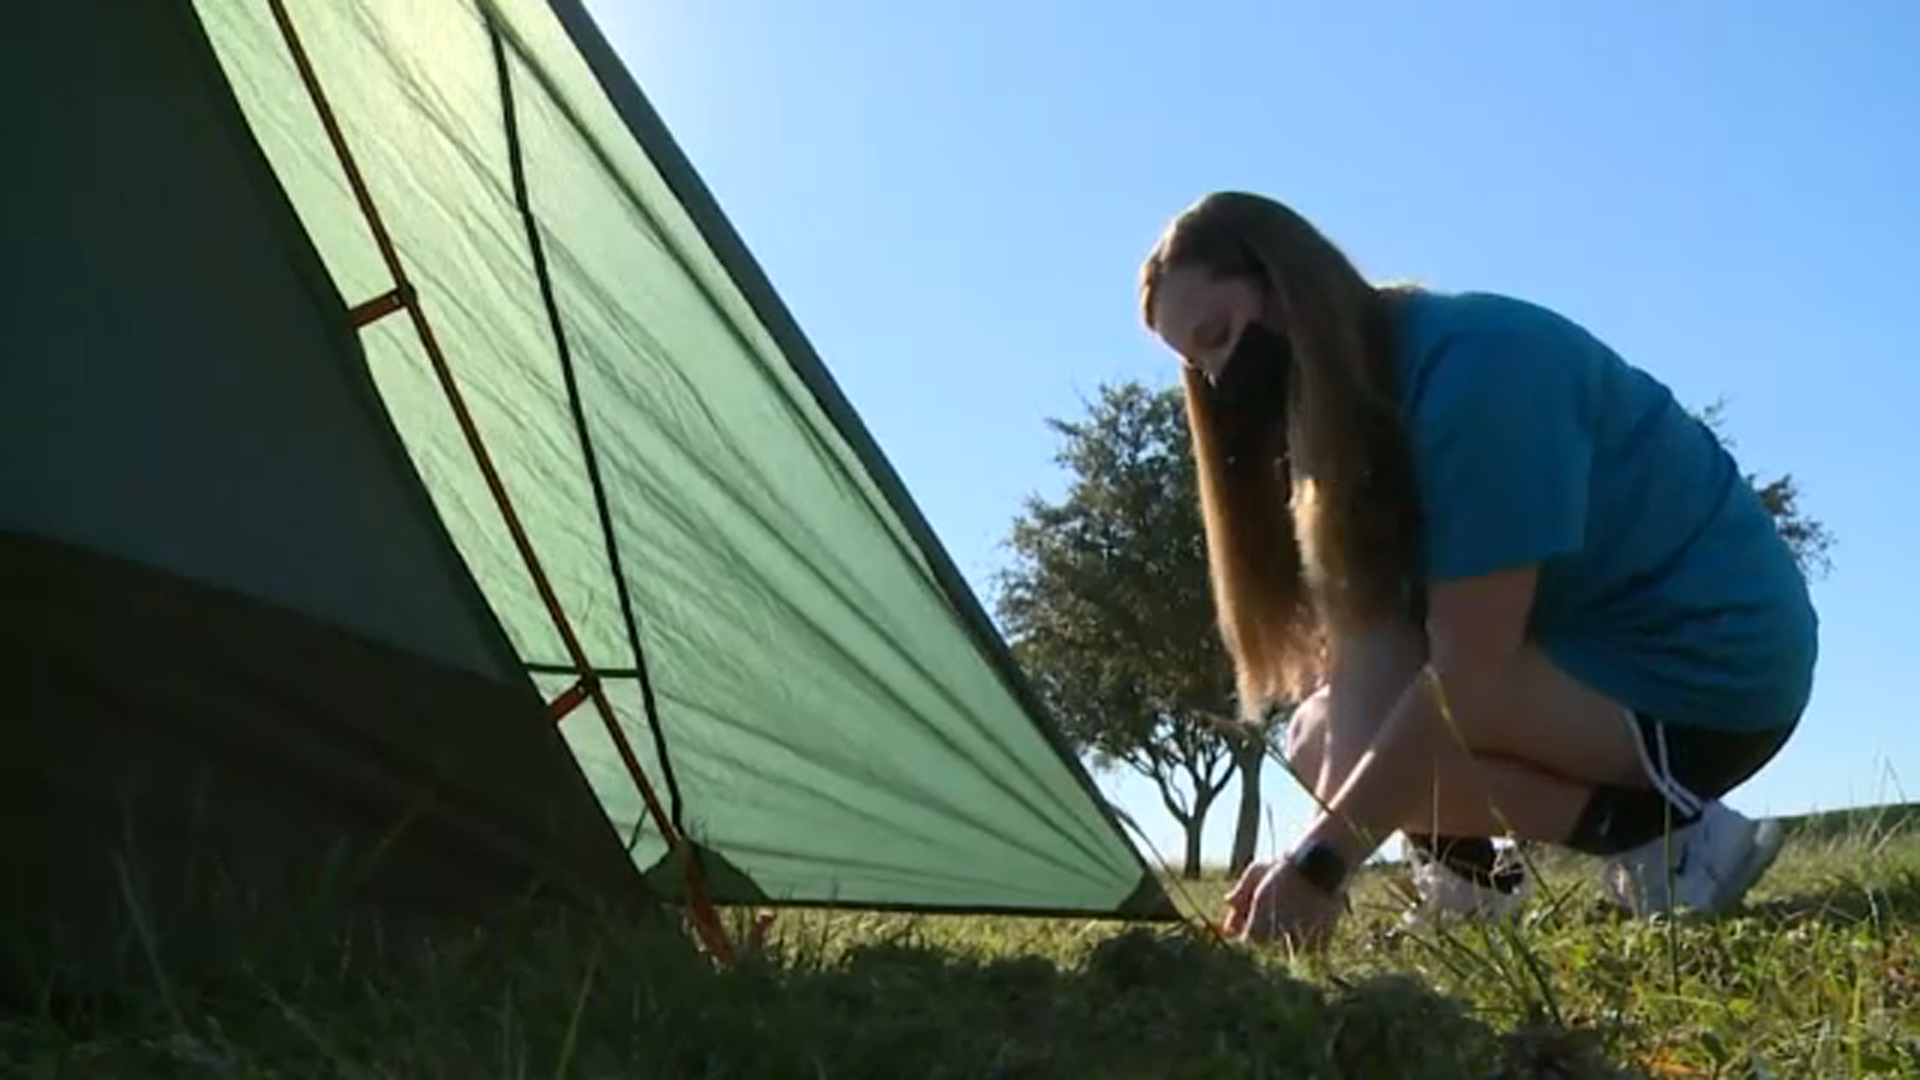 Dallas teen joins nearly 800 other girls in becoming first female Eagle Scouts